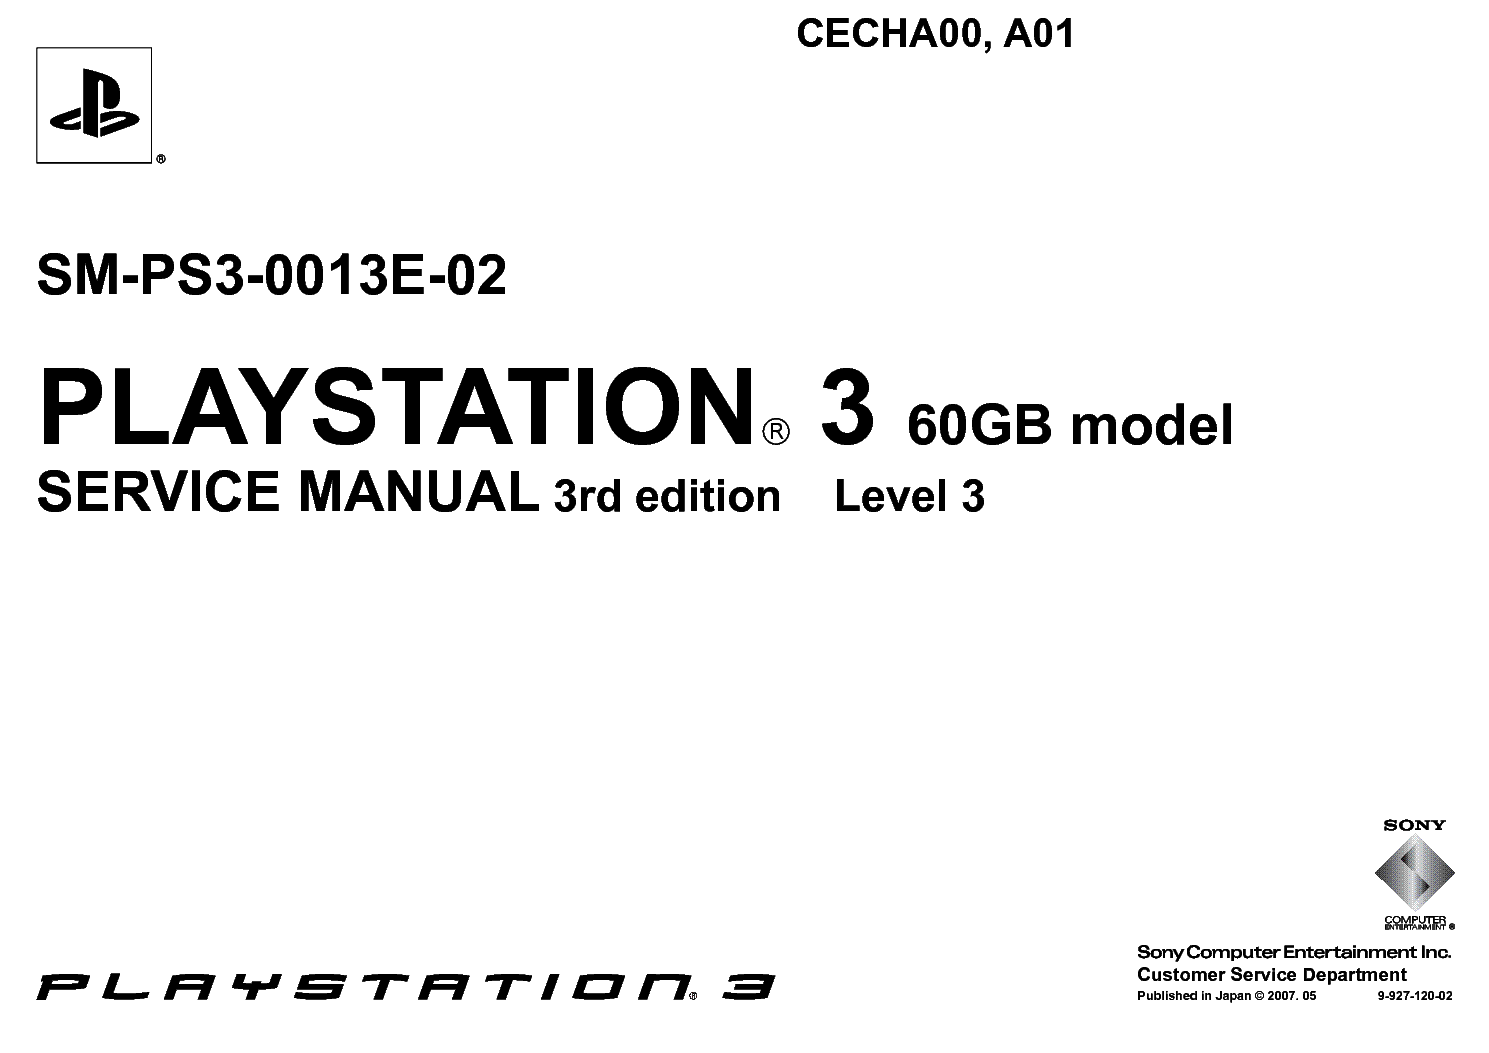 sony playstation 3 cecha00 cecha01 sm ps3 0013e 02 service manual rh elektrotanya com Sony PS2 Sony PS2